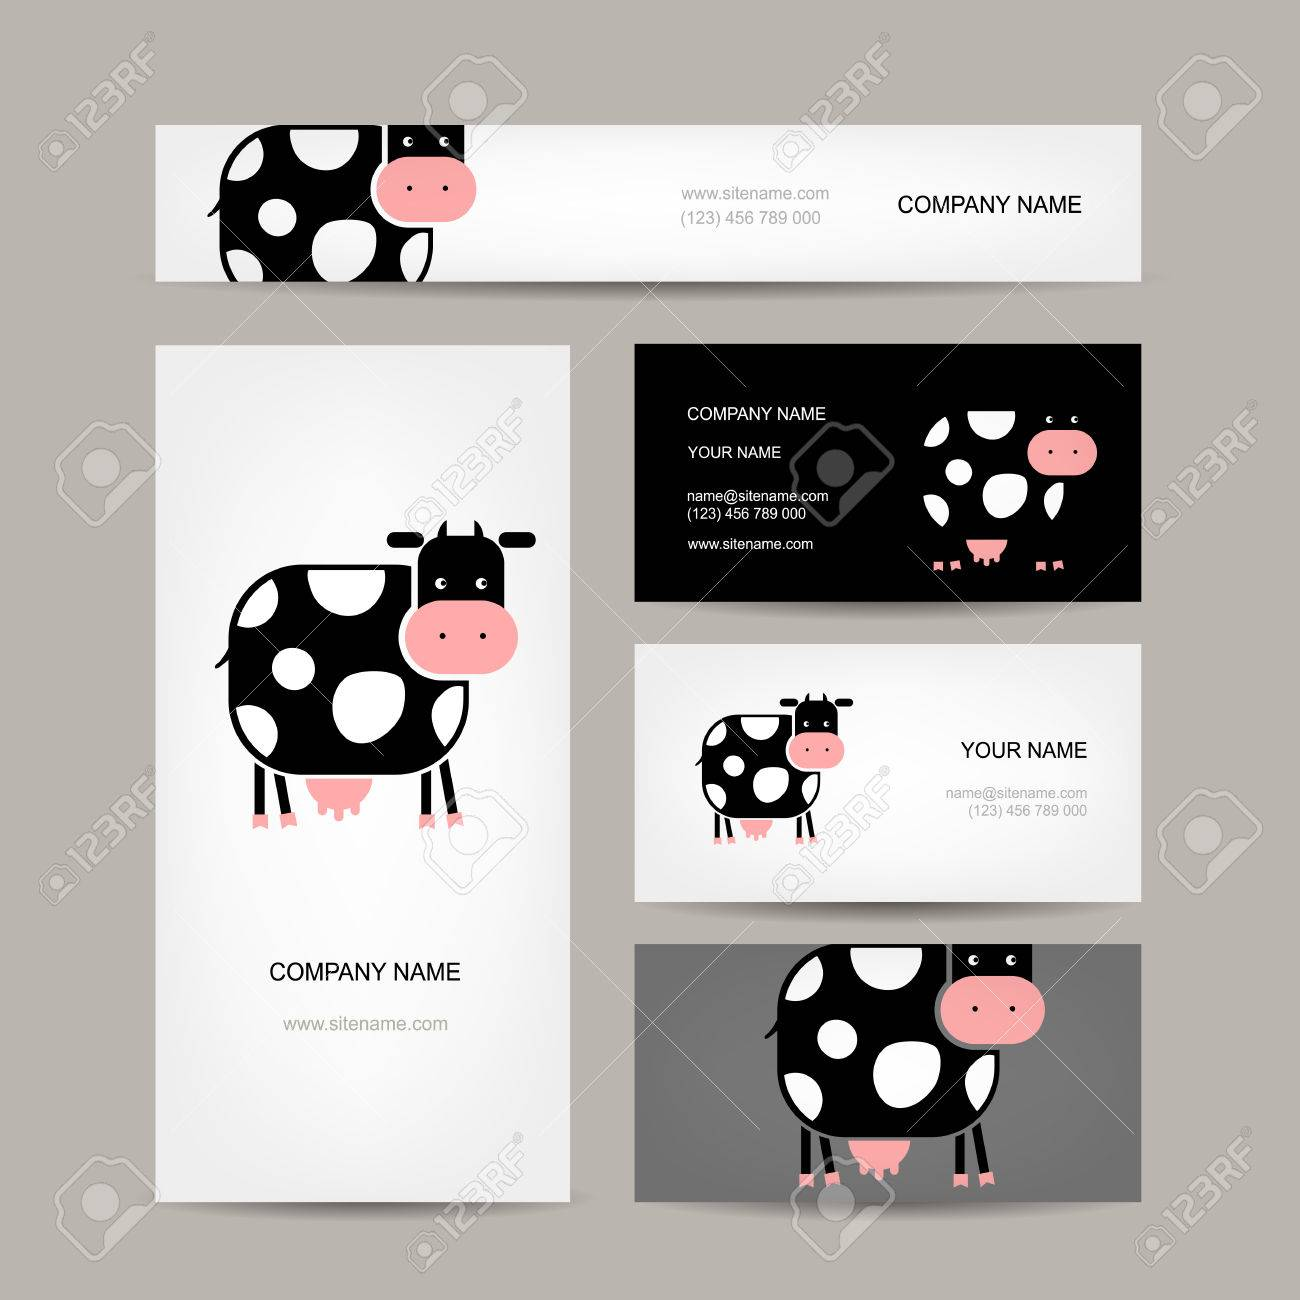 Business Cards Design With Funny Cow. Vector Illustration Royalty ...